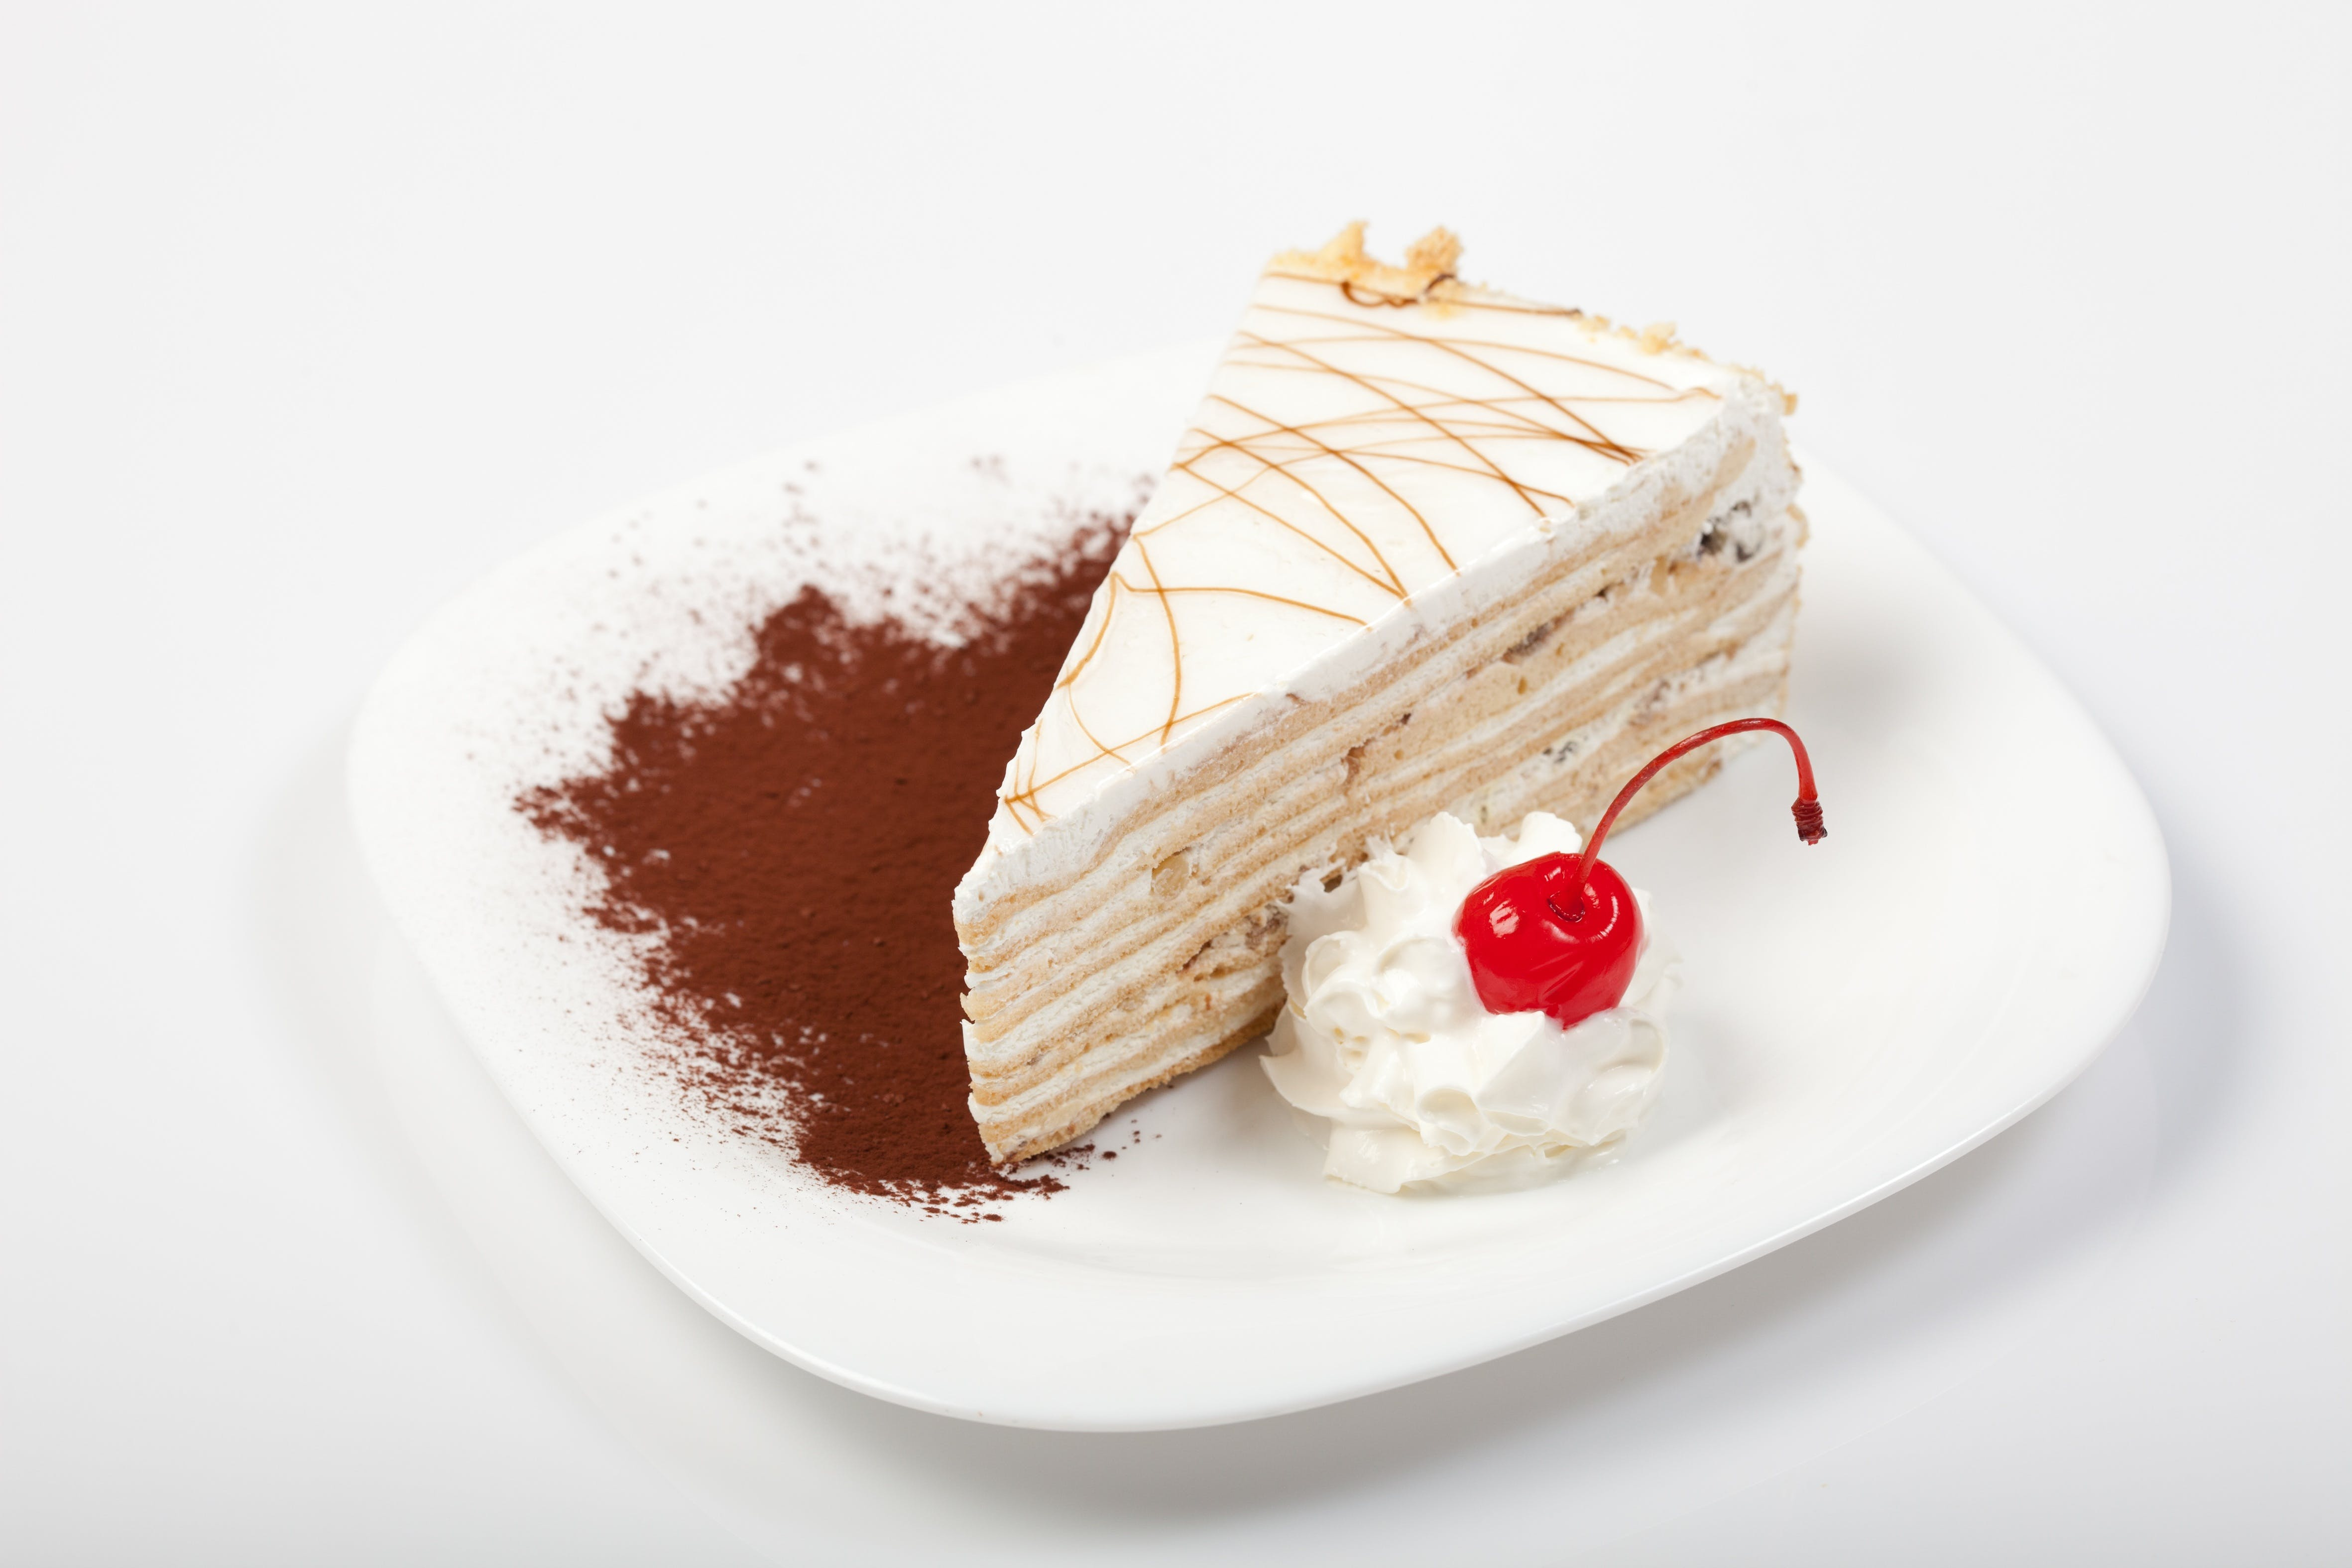 Slice of White Icing-covered Cake on Plate